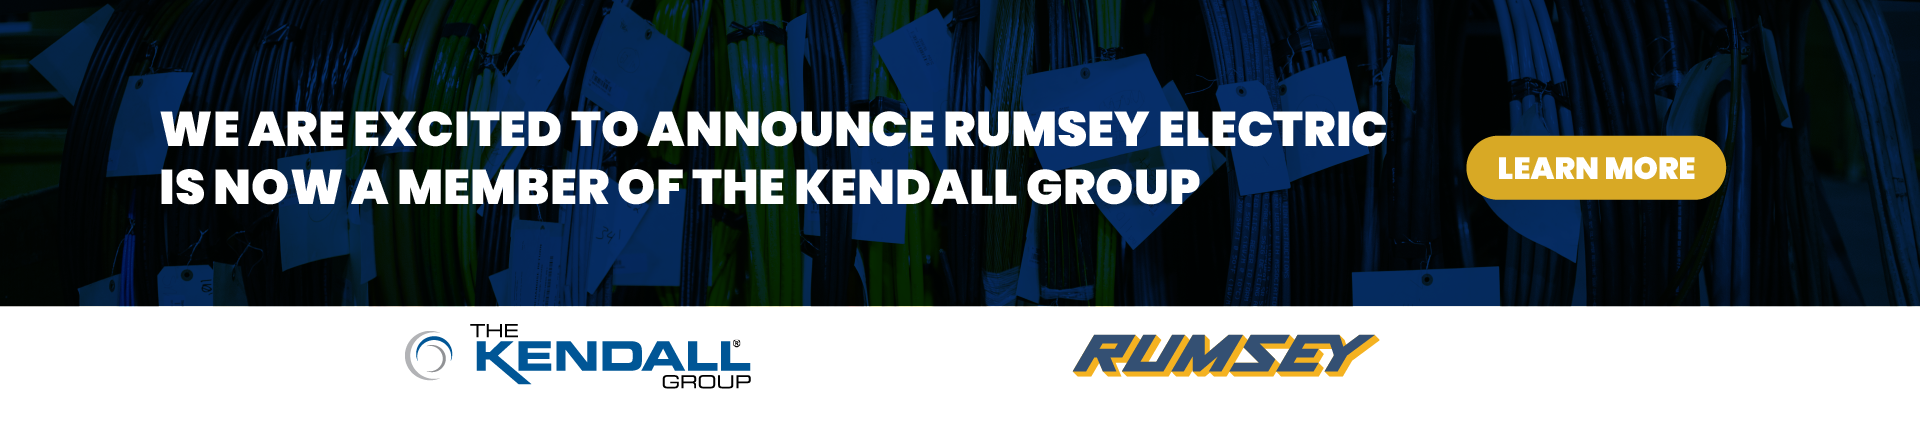 Rumsey Acquired by Kendall Electric